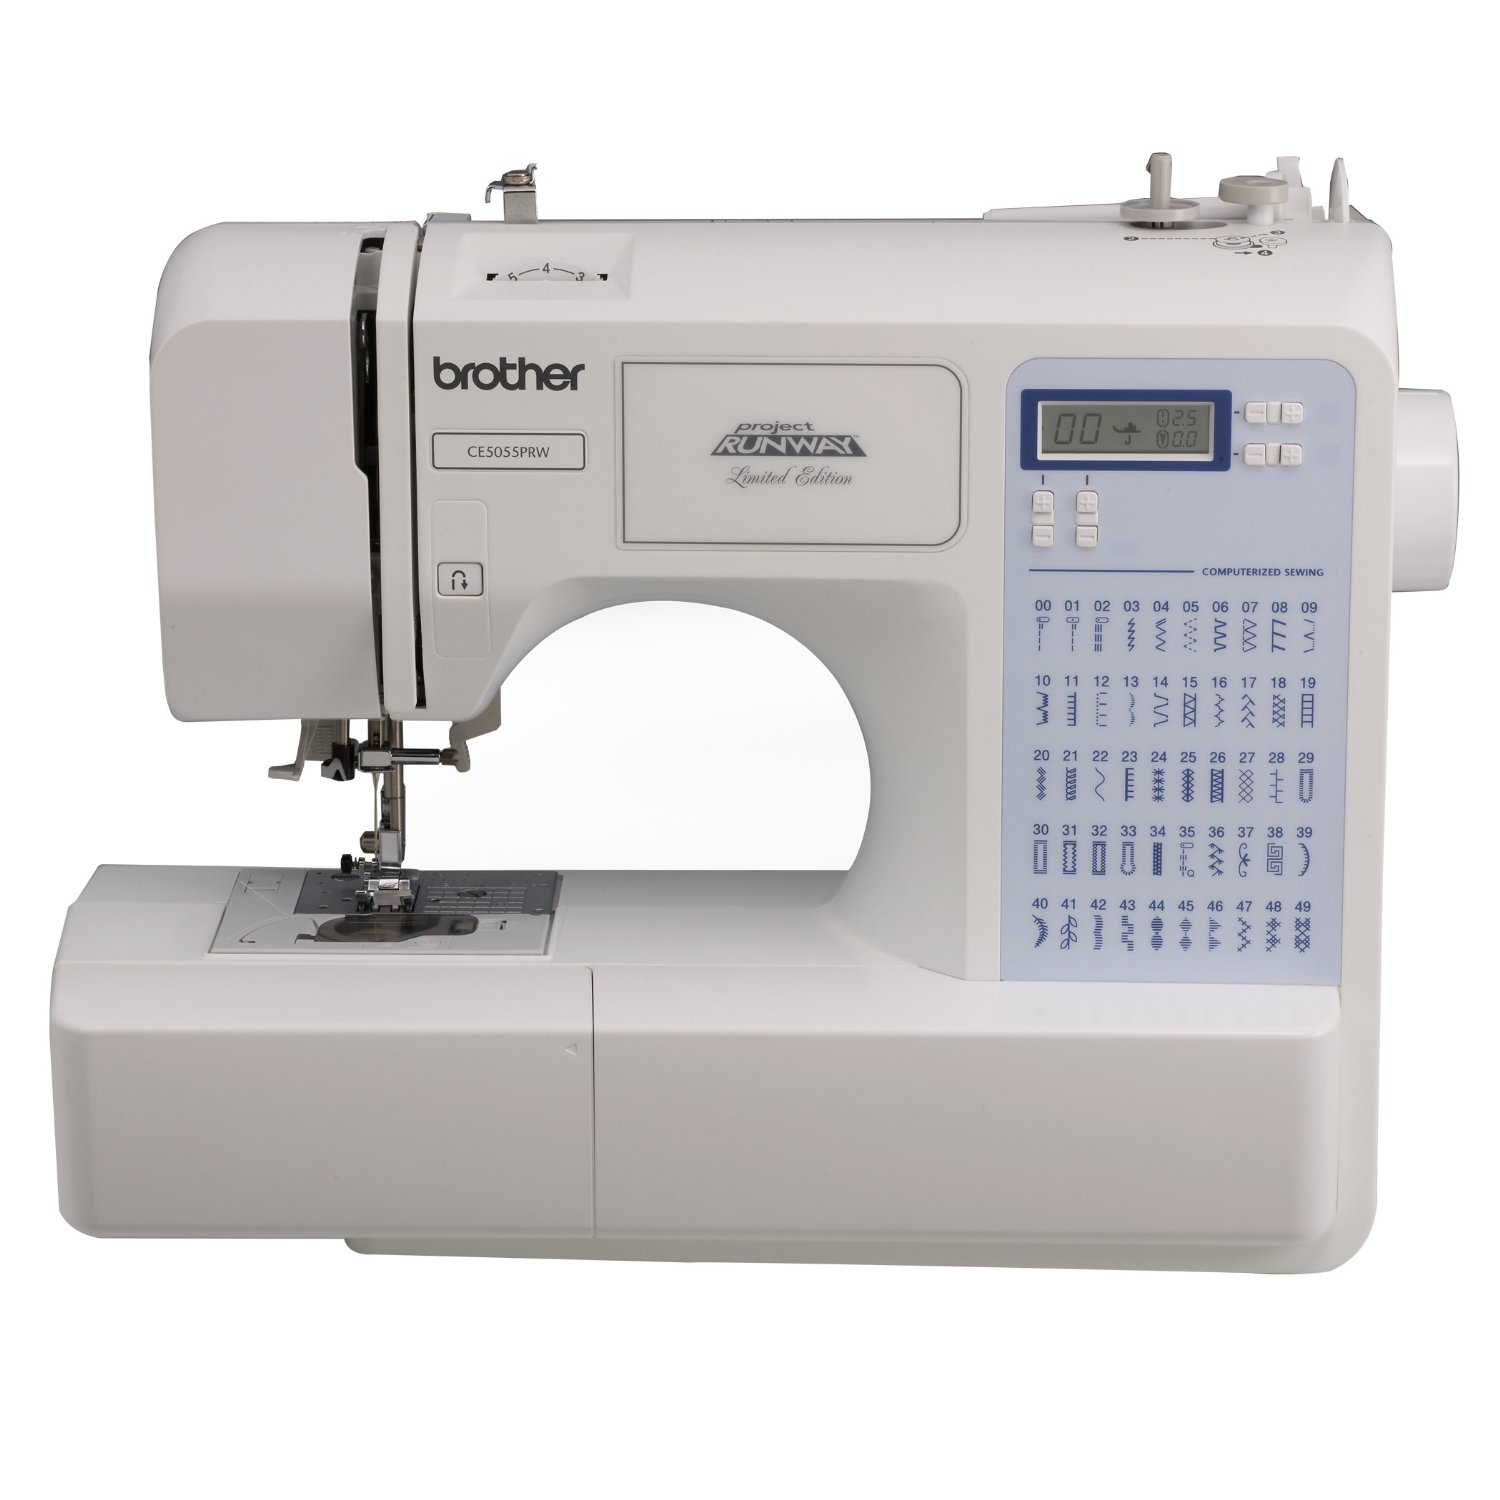 Best Brother Sewing & Embroidery Machine Review: Always on the go? This portable combo machine is for here you